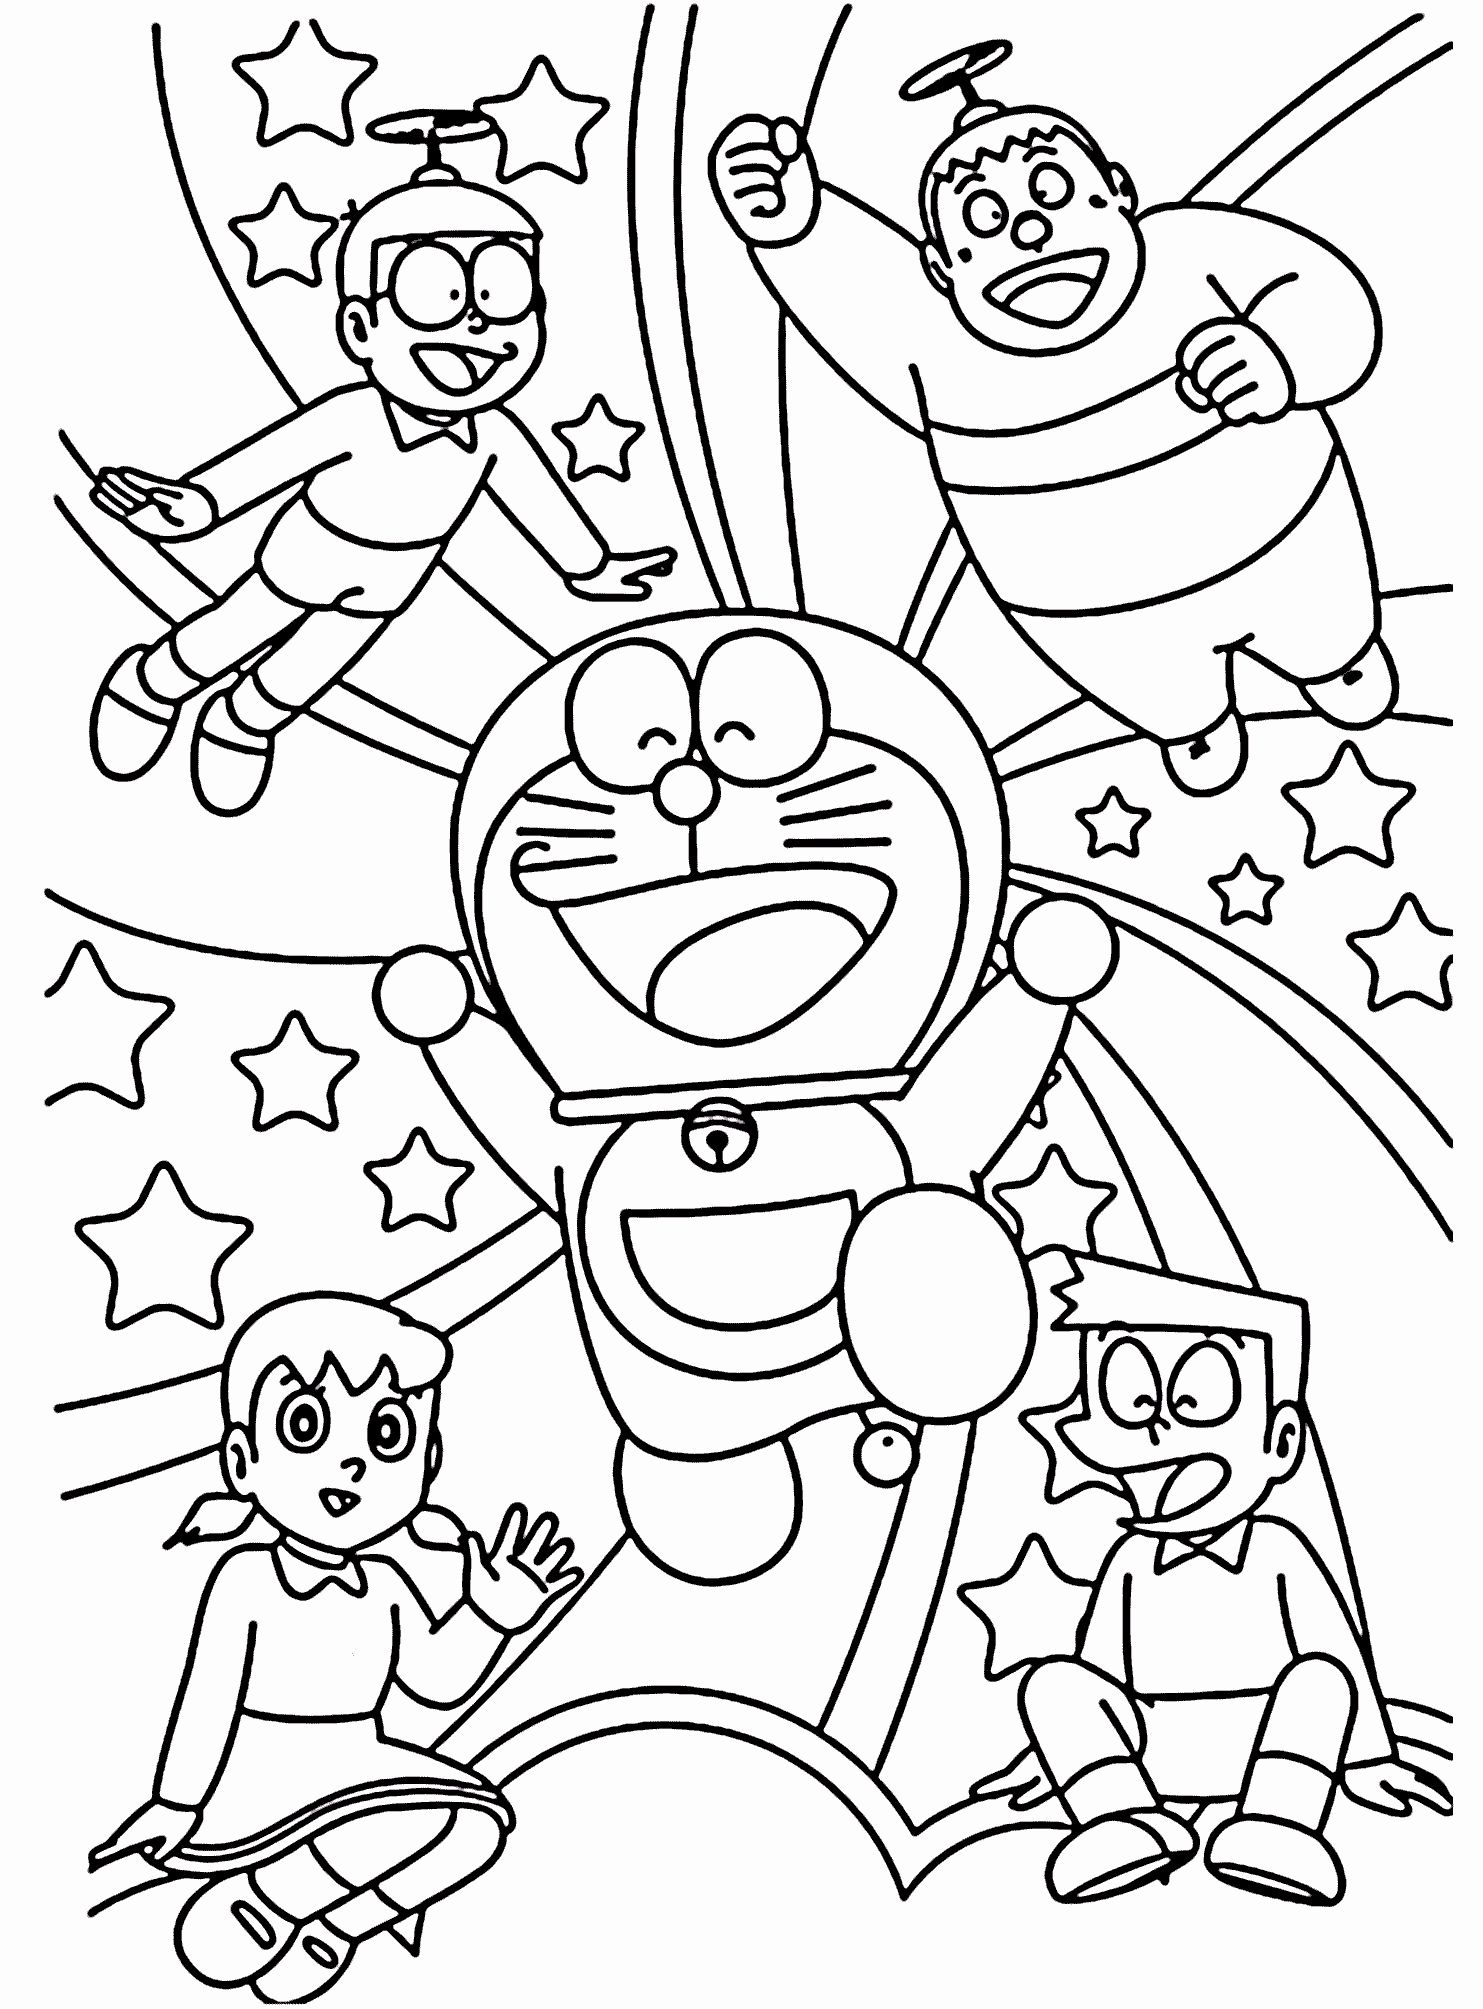 21 Coloring Book For Toddler 2020 이미지 포함 도라에몽